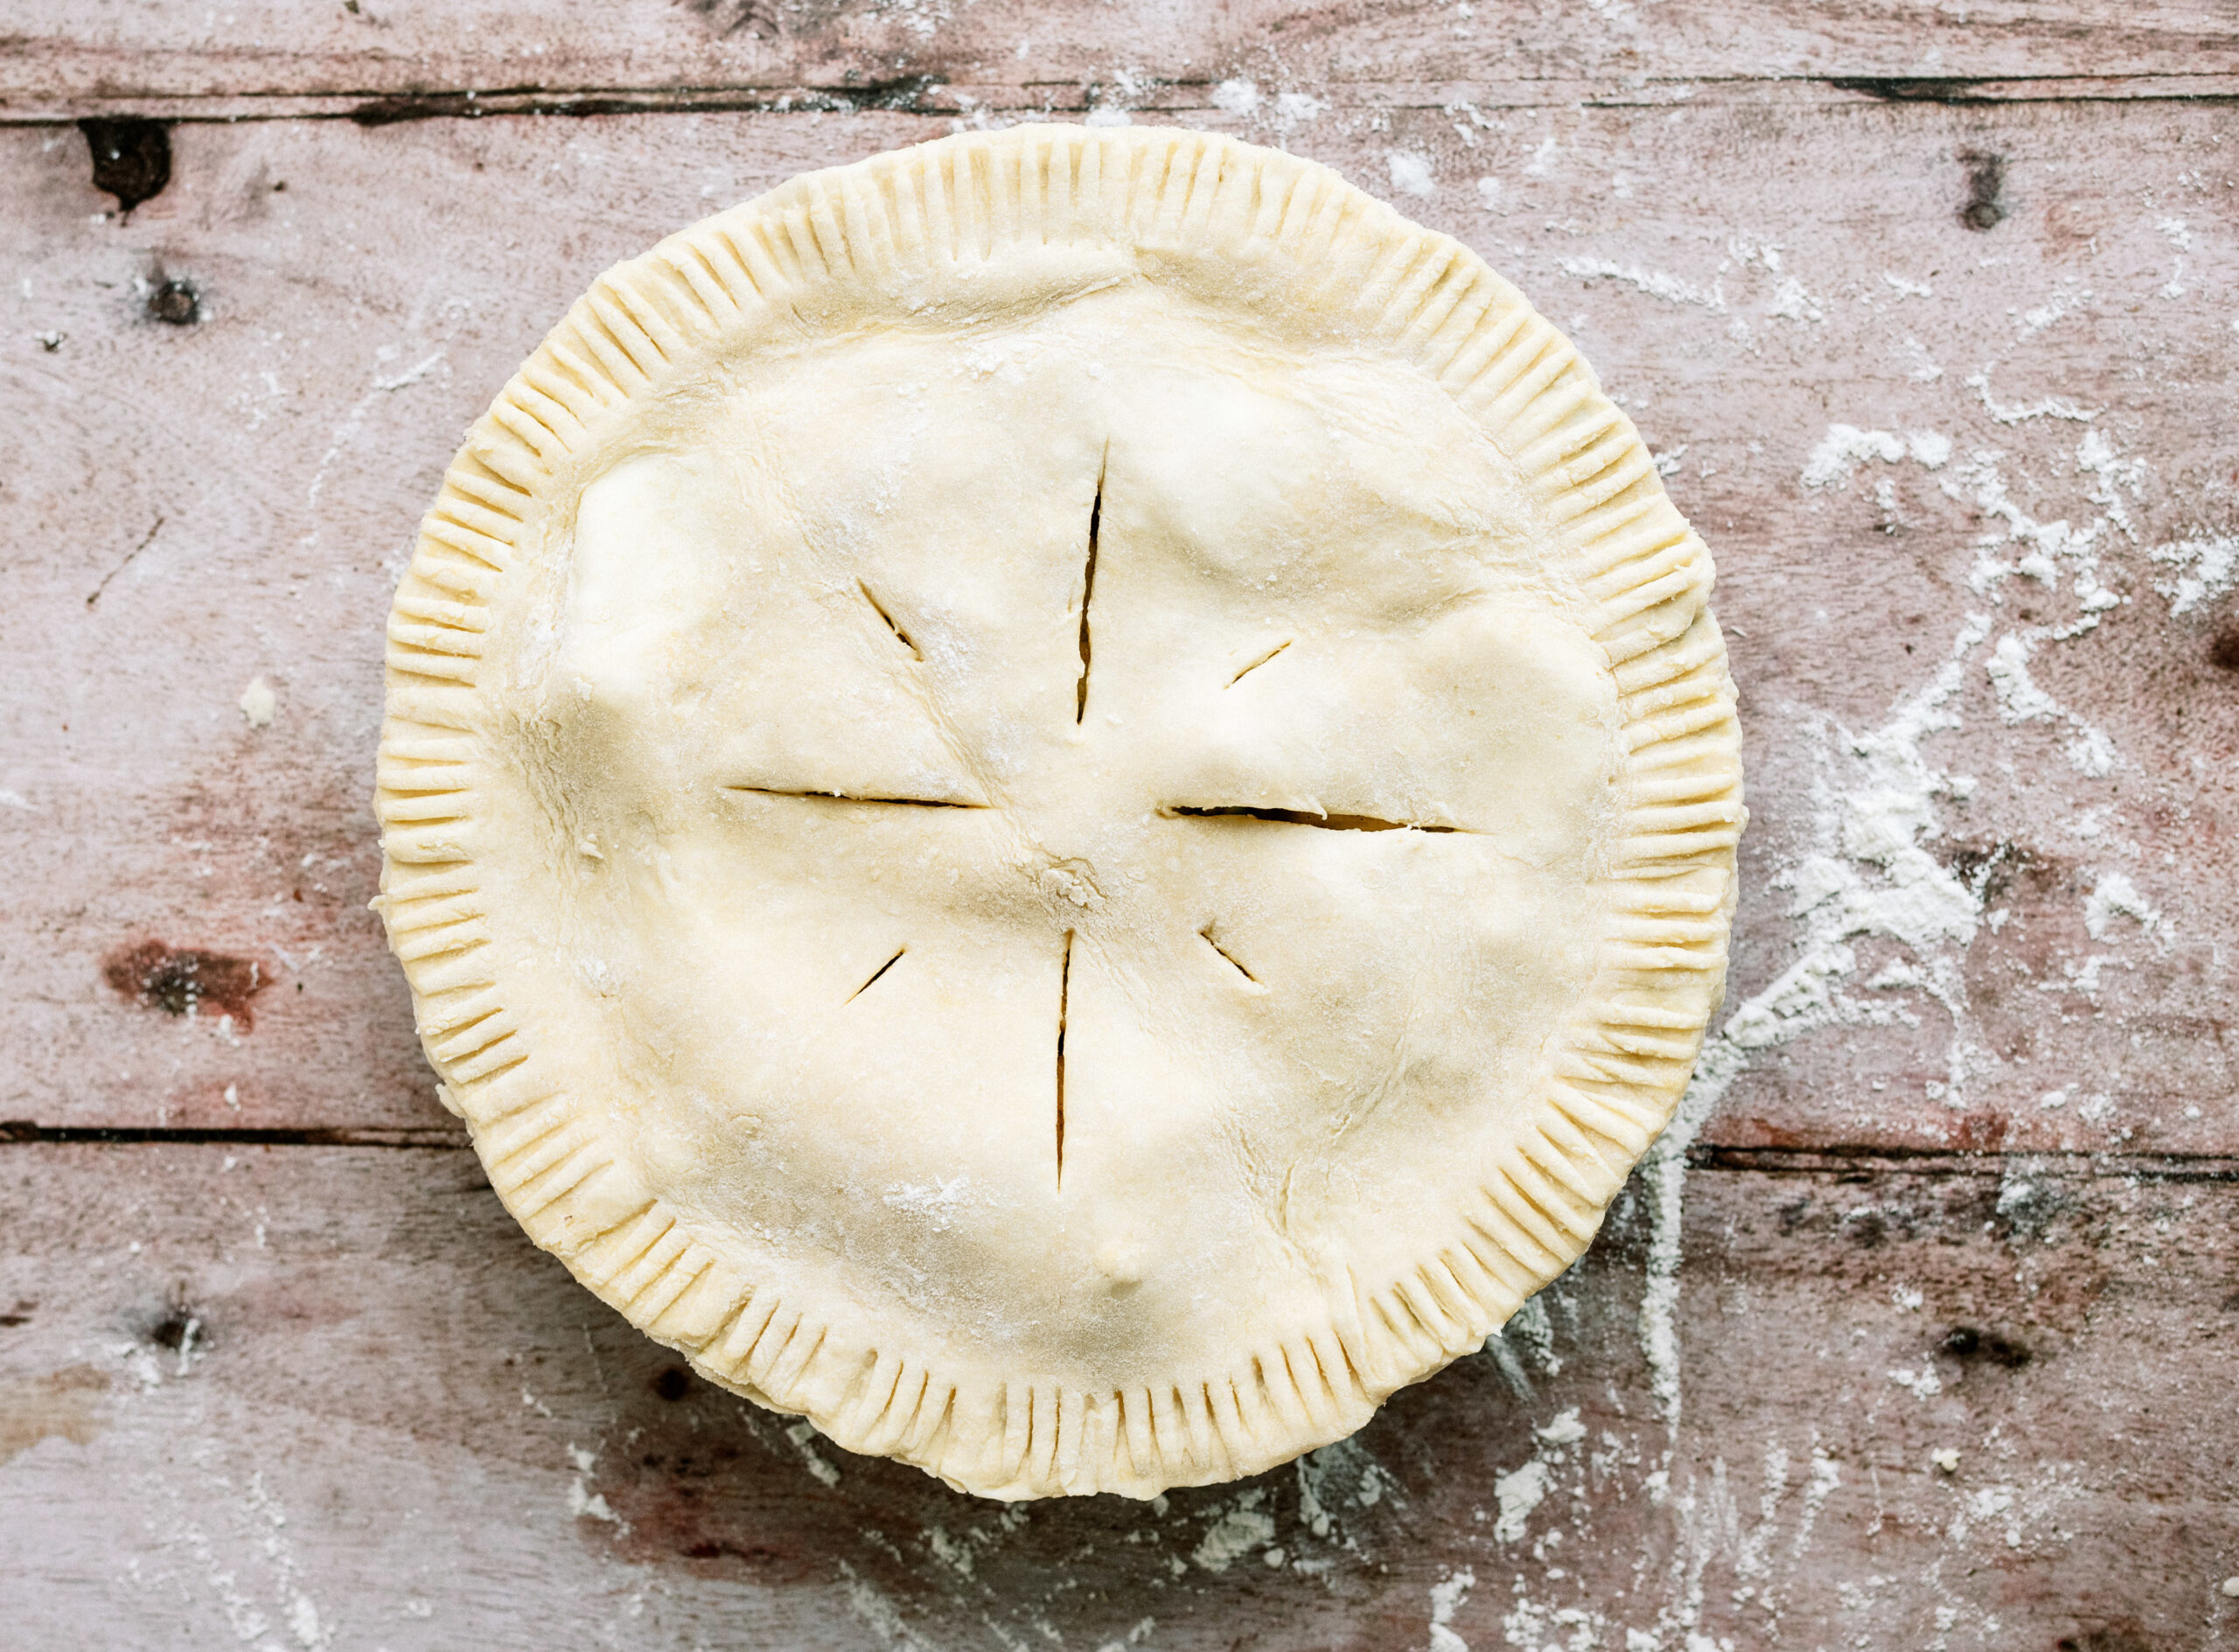 apple pie ready to be baked in the oven